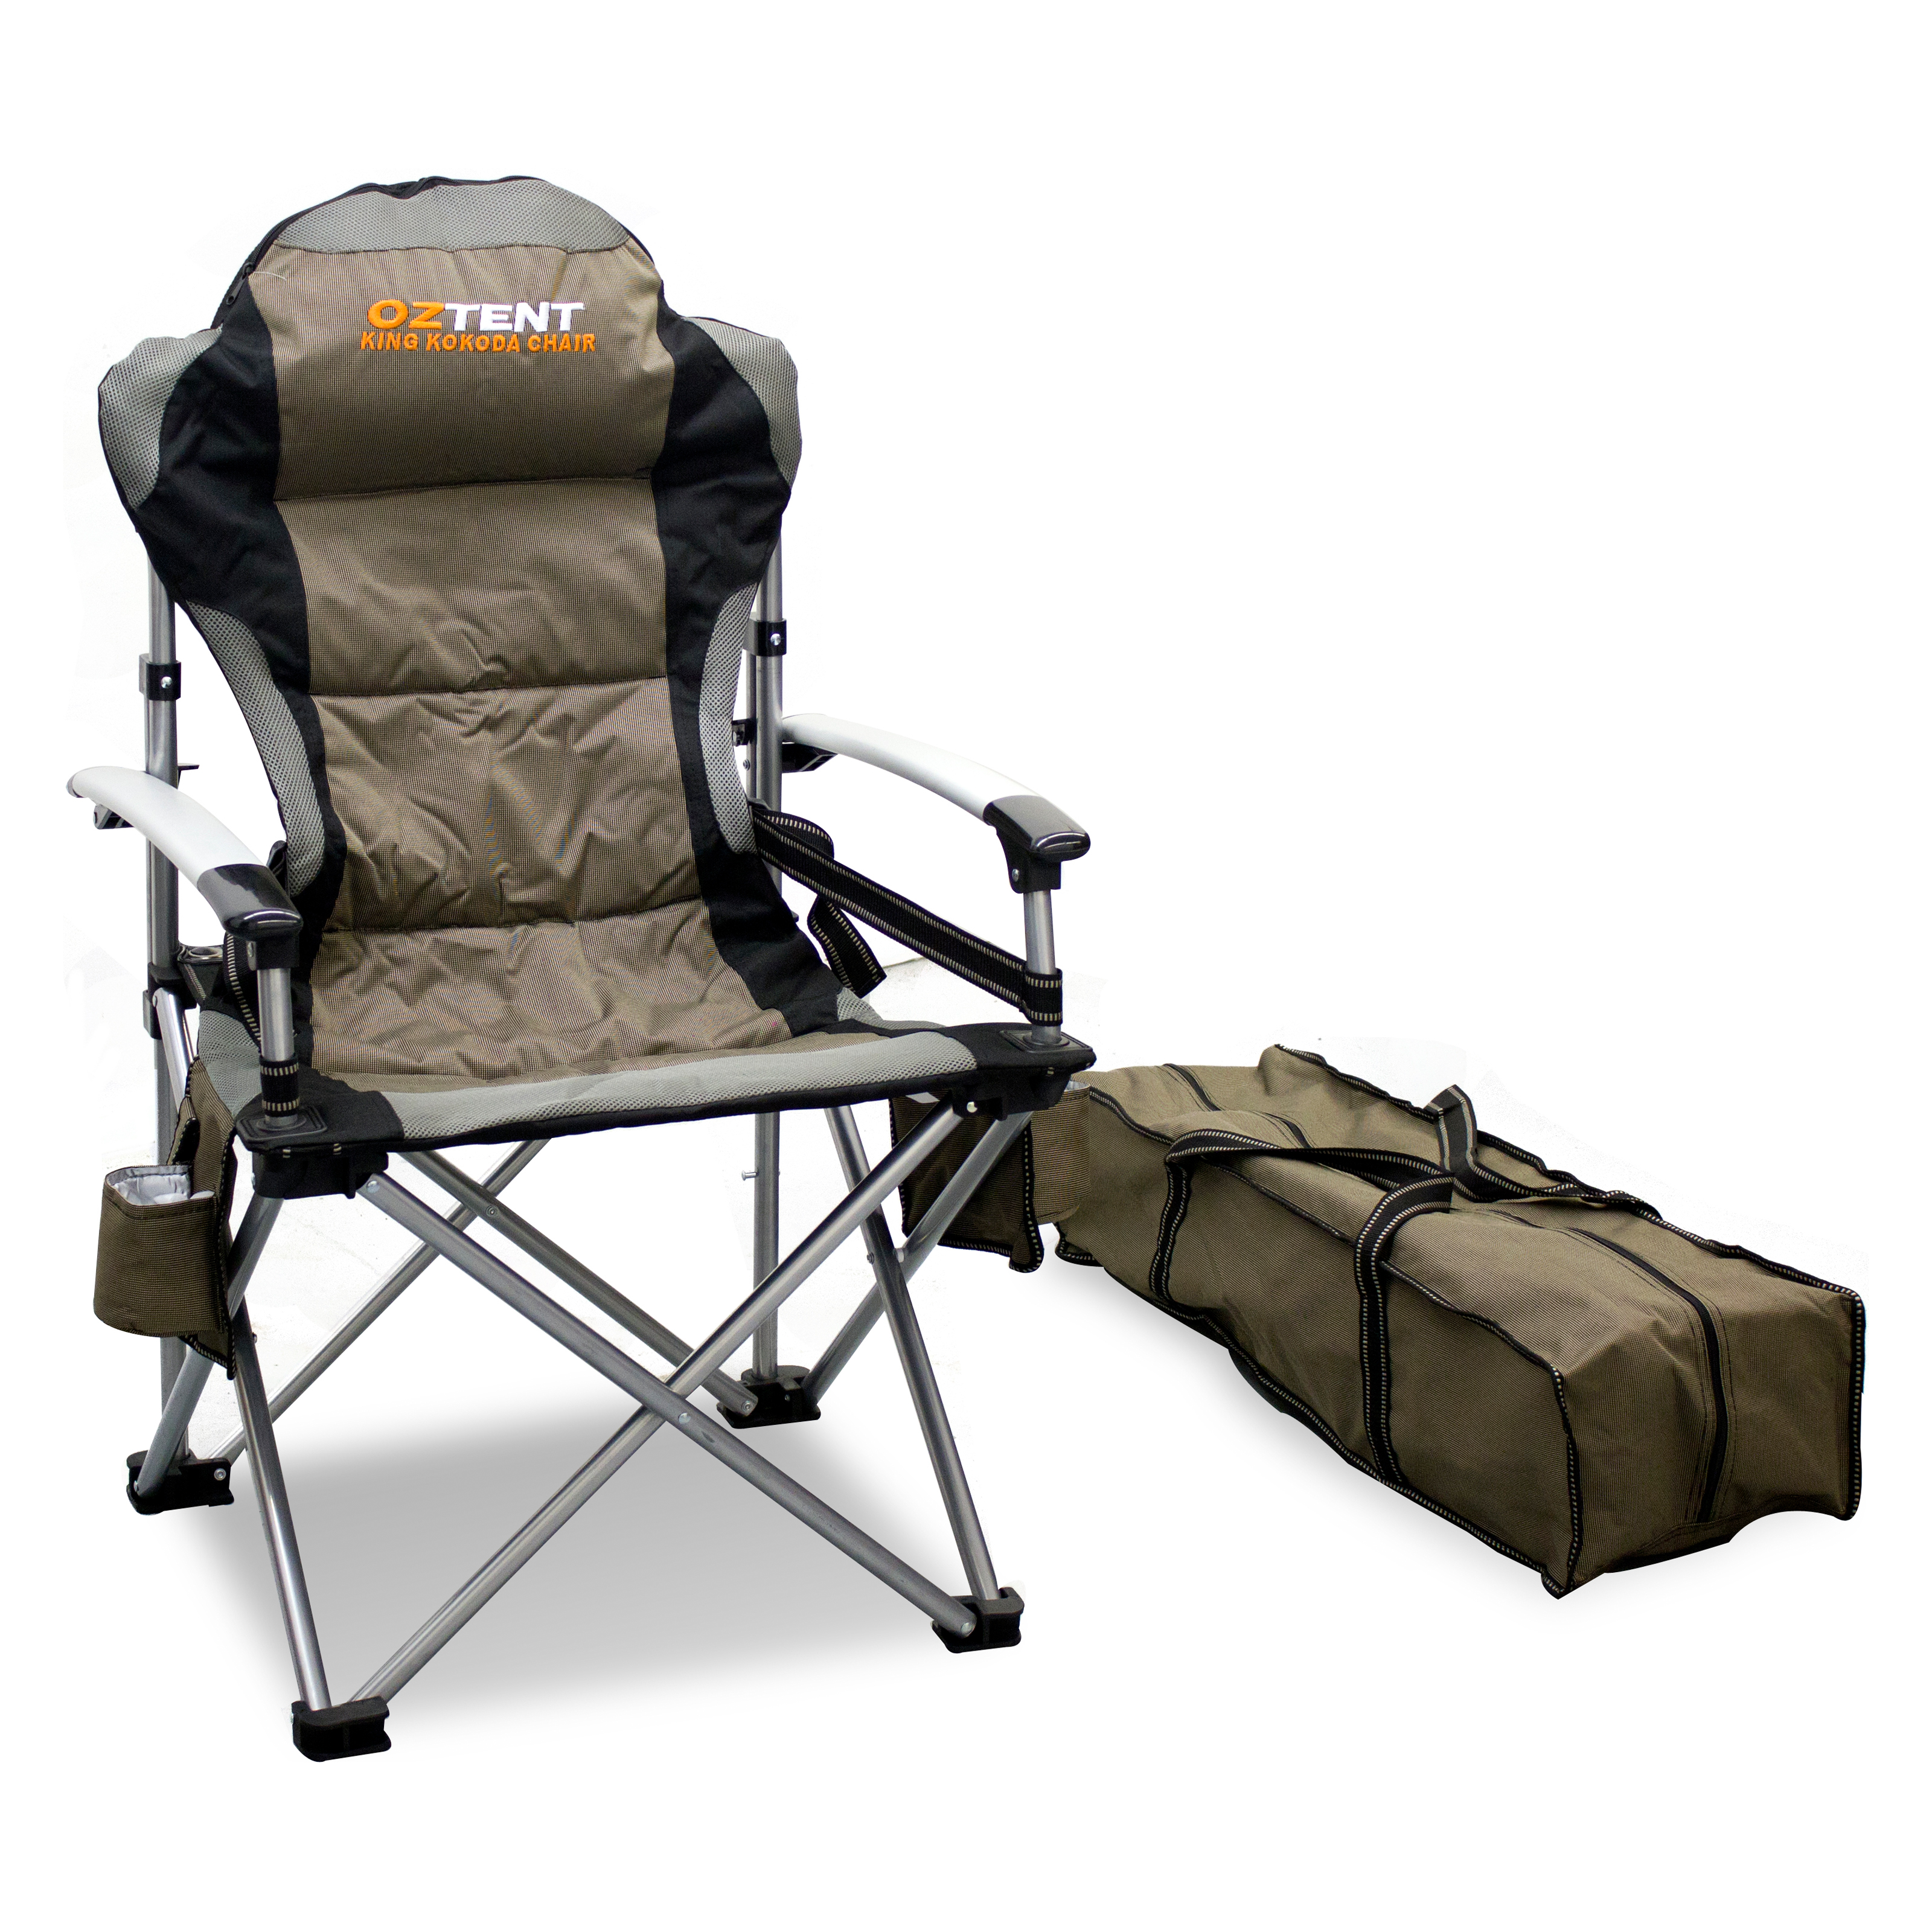 oztent king kokoda chair review ohio state bean bag lawn shop your way online